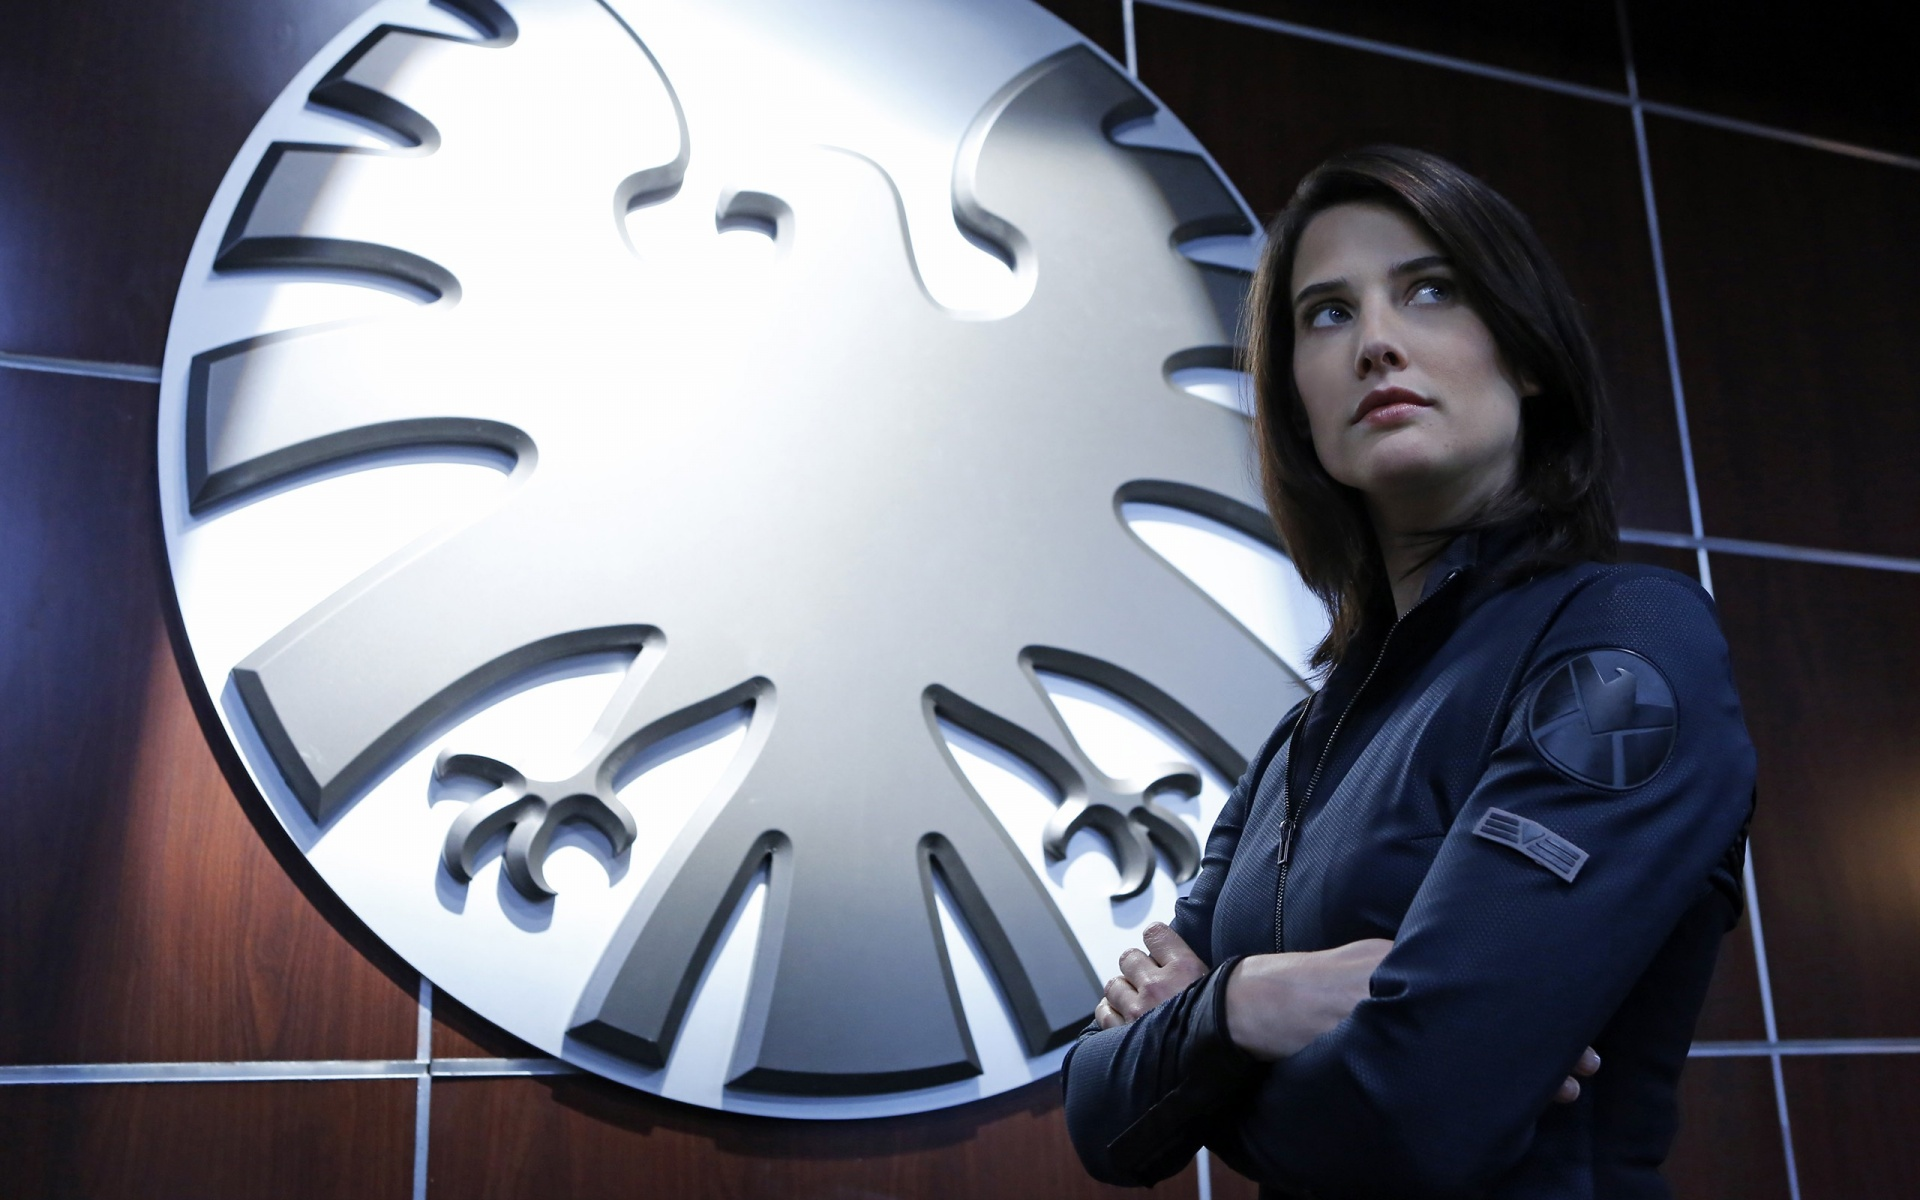 Cobie Smulders Maria Hill Agents Of Shield Wallpapers In Jpg Format For Free Download